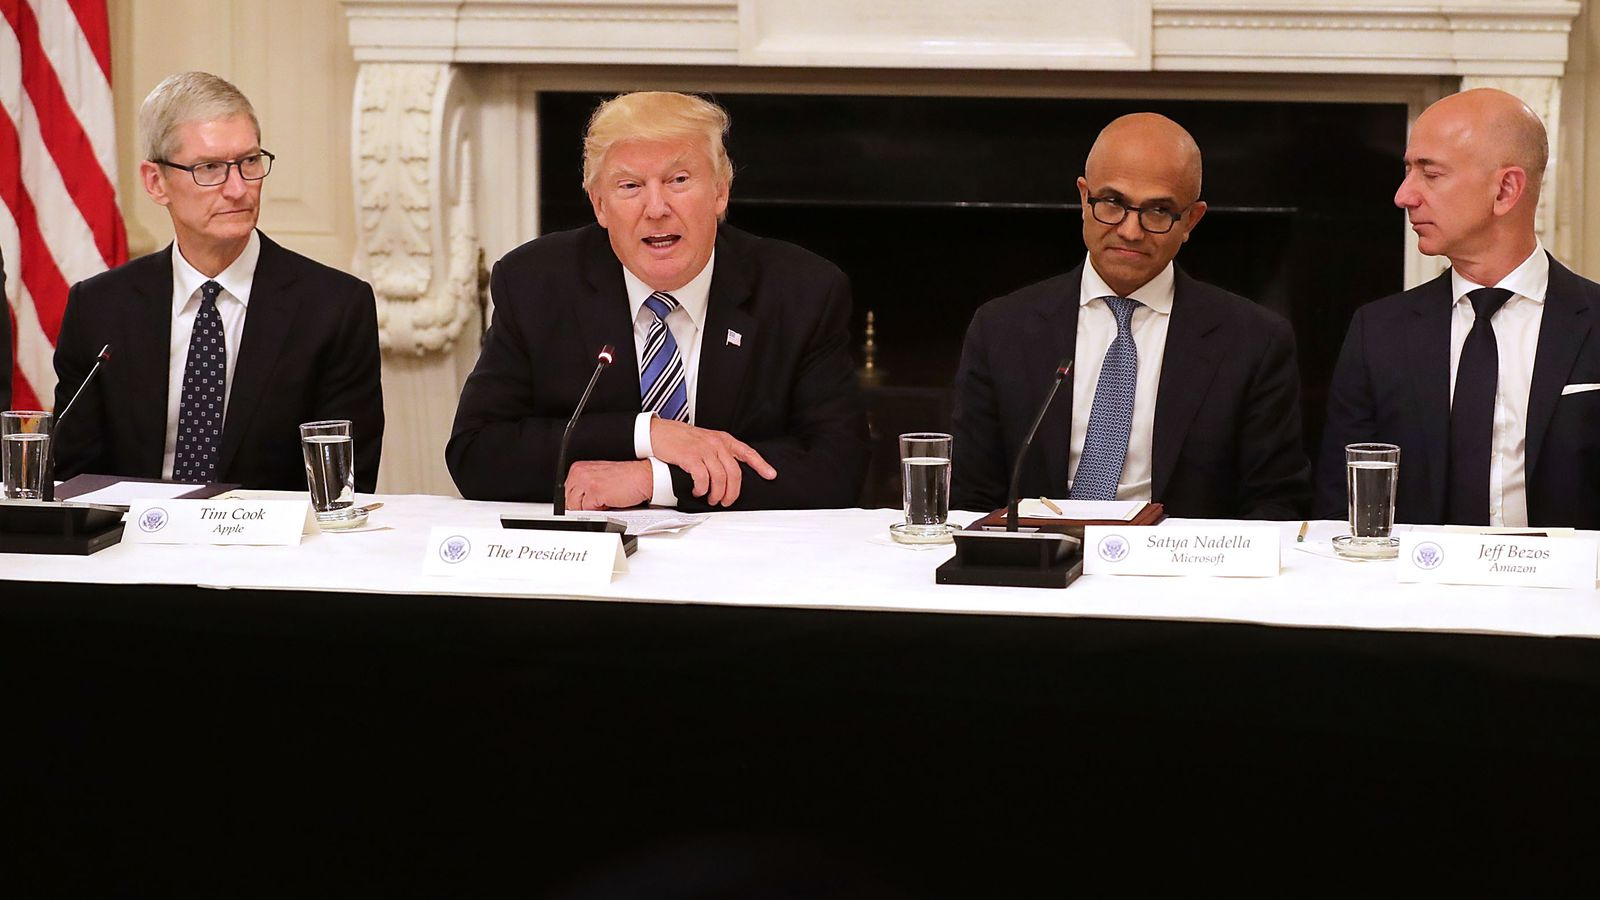 recode.net - Tech has yet to totally bail on Trump